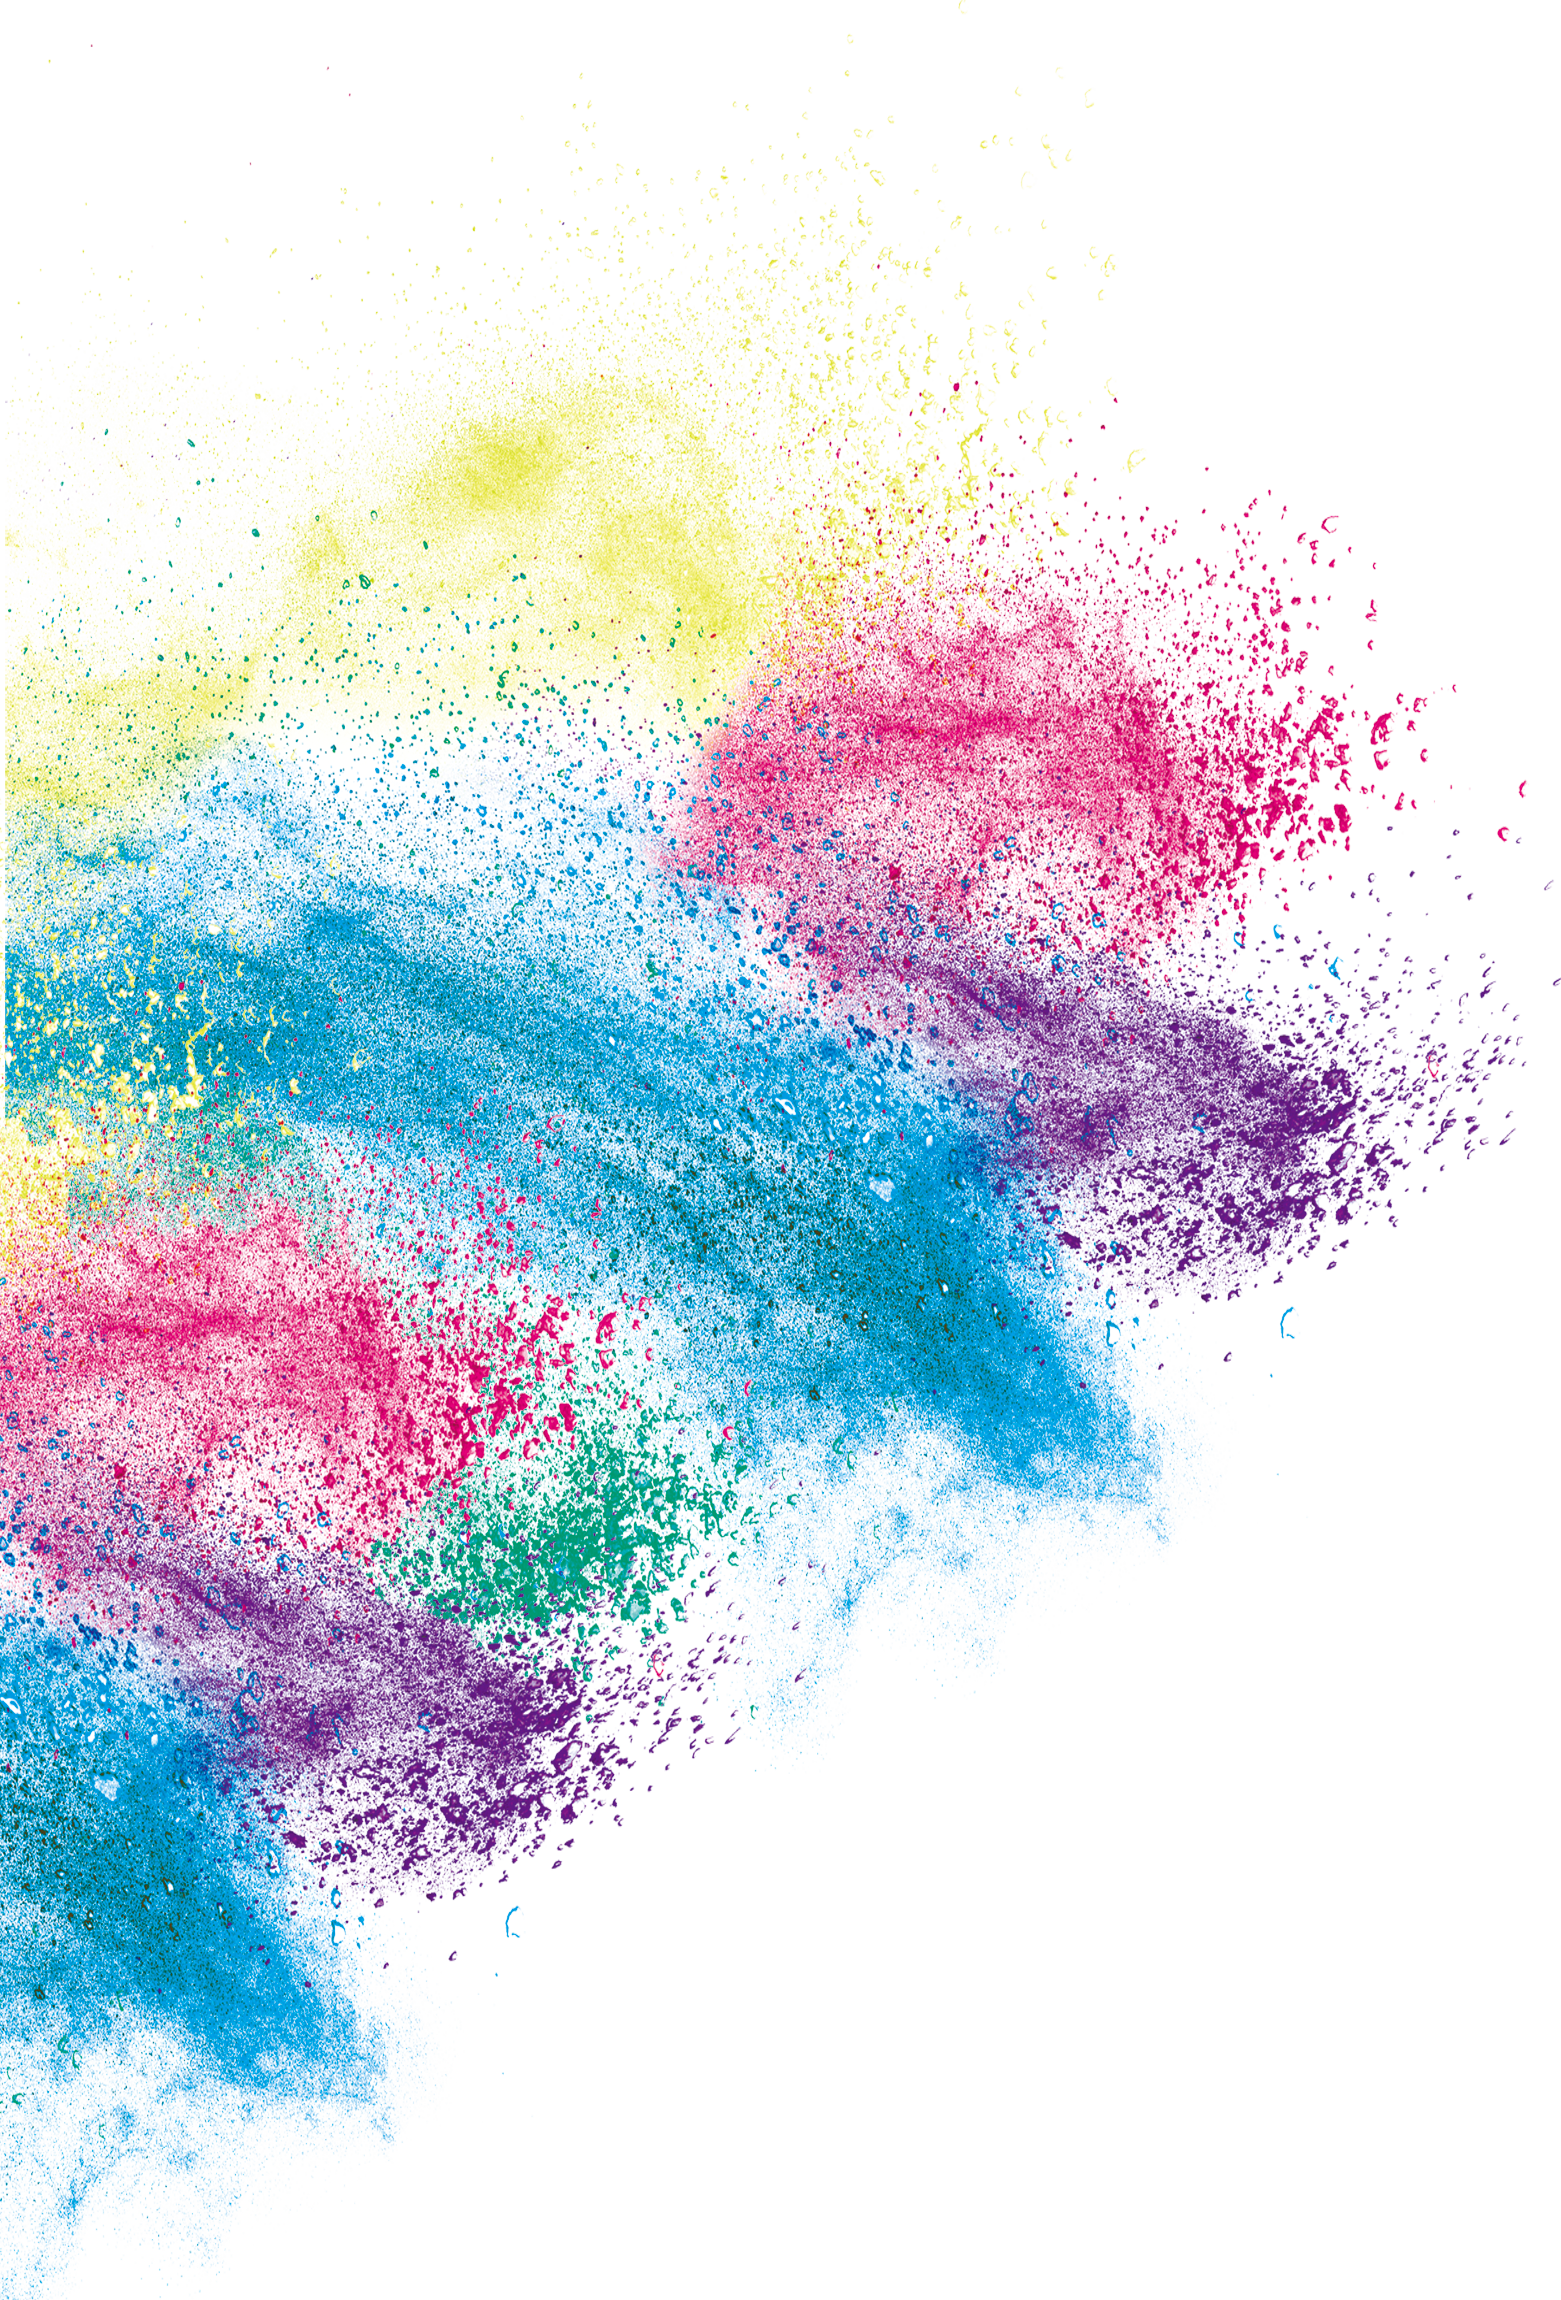 Art Inkjet Color Effect Creative Printing Dust PNG Image